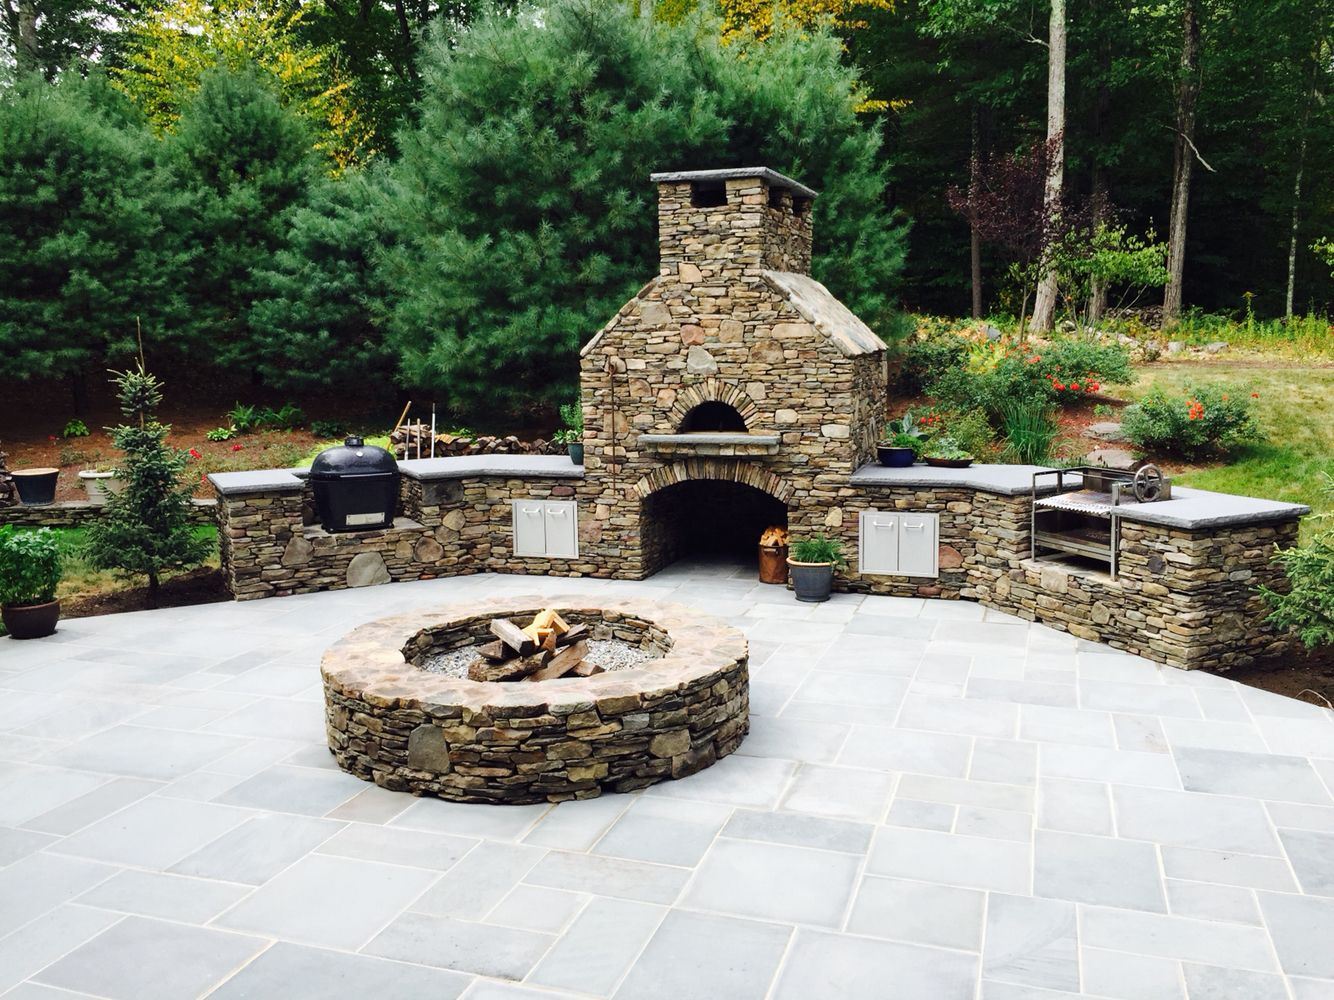 Outdoor Kitchen With Pizza Oven Fire Pit Smoker And Rotisserie